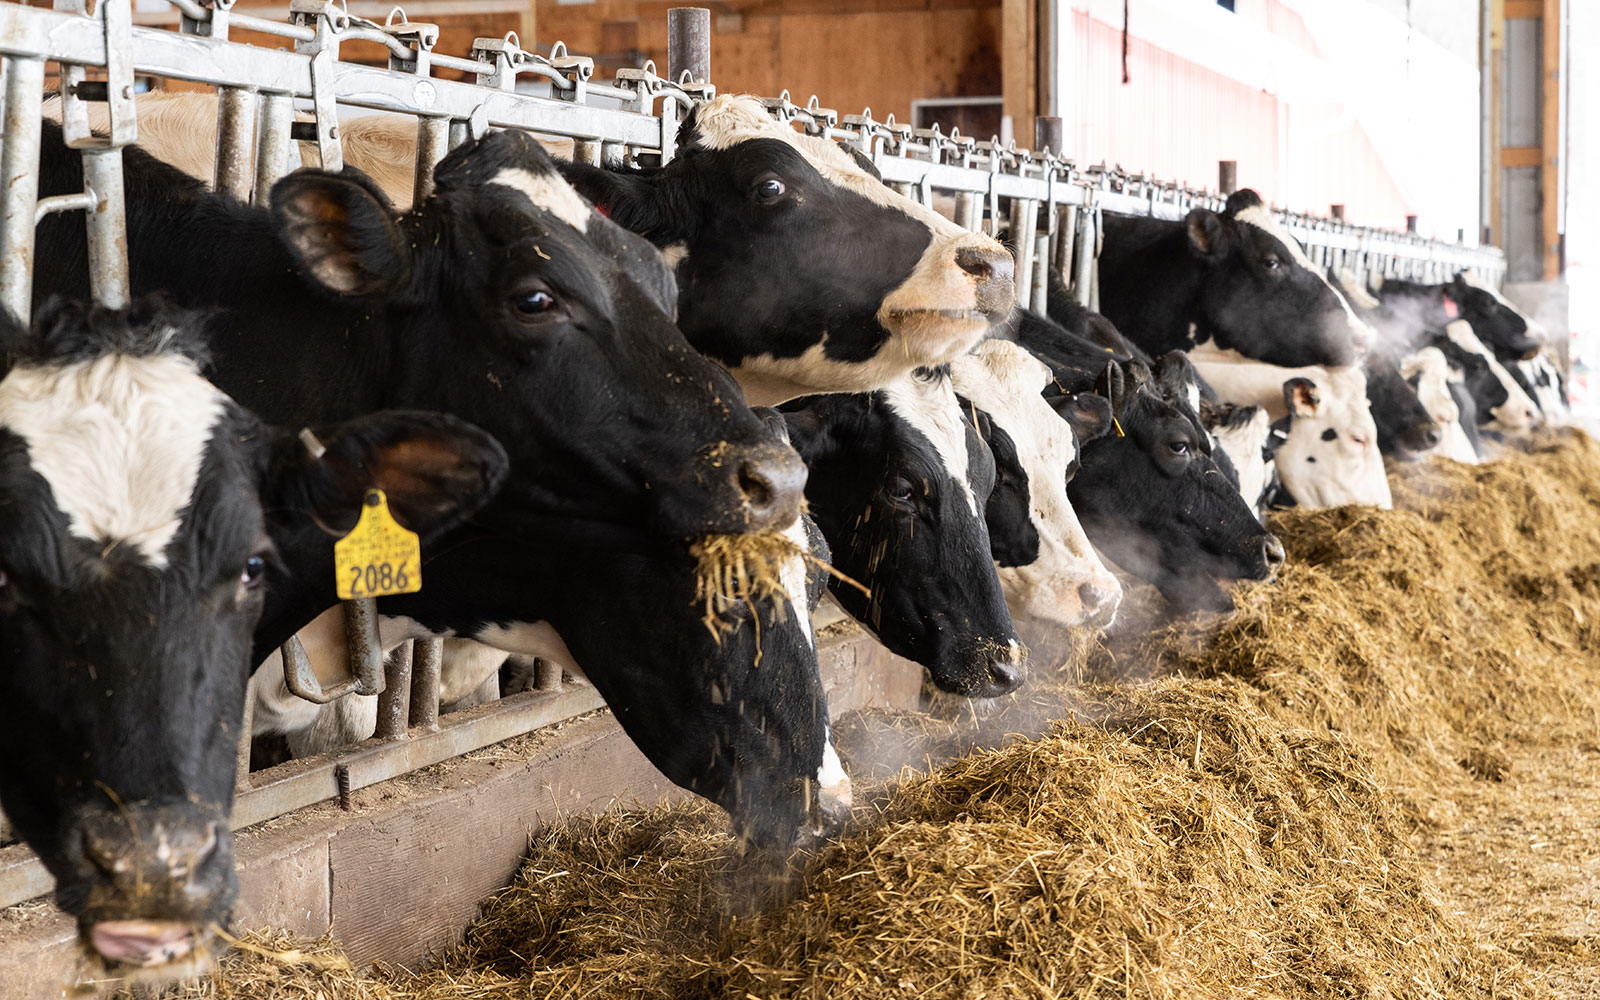 Cows have clouds of warm breath around them as they eat piles of dried hay.